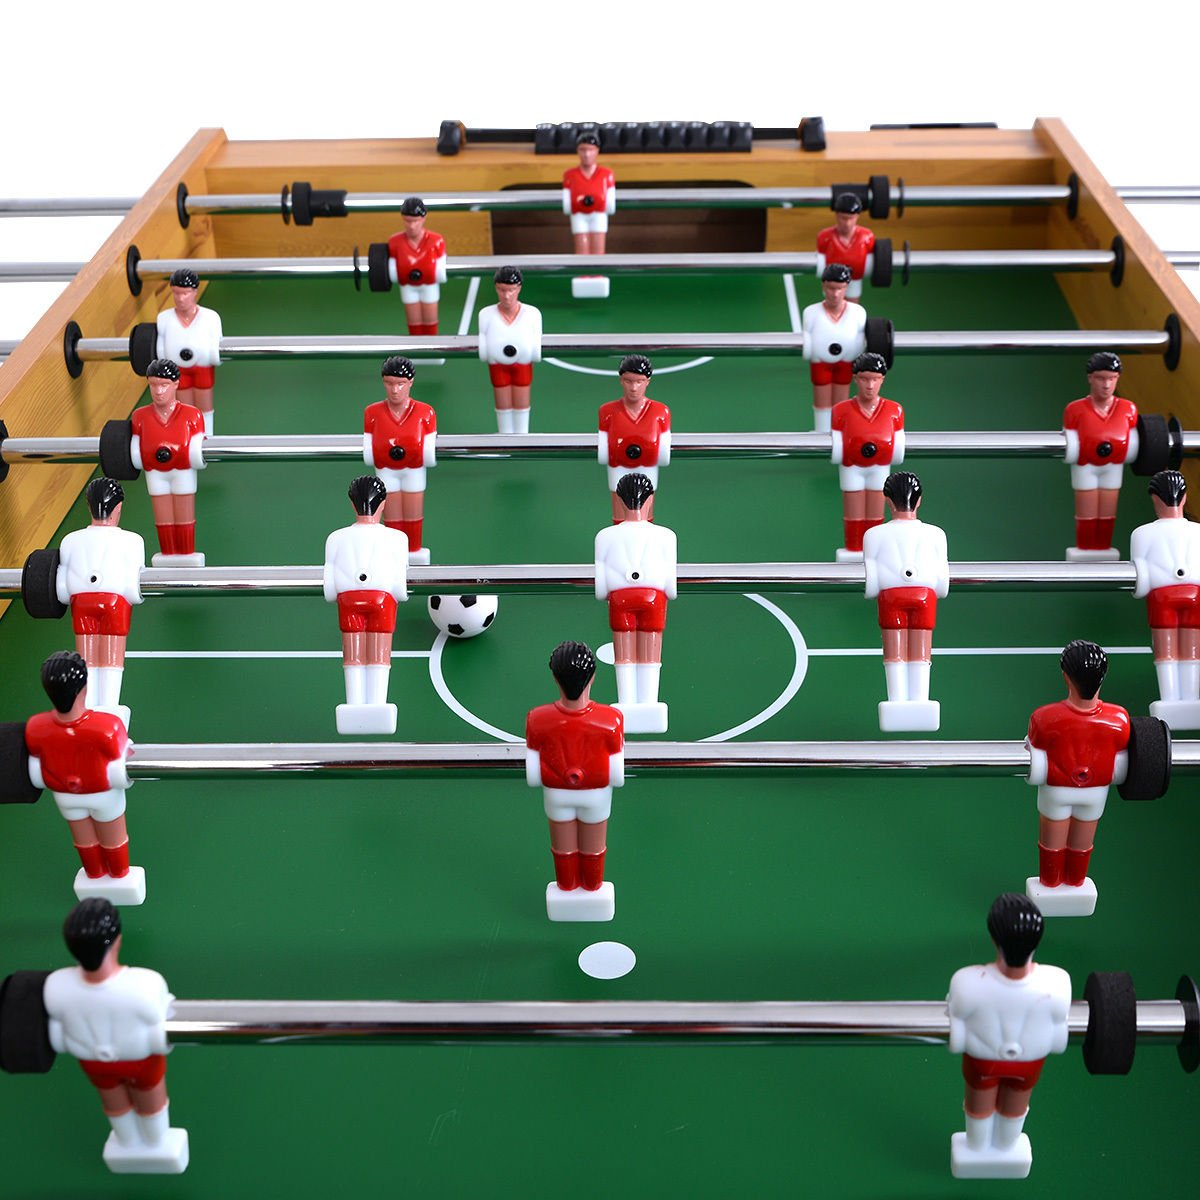 Giantex Foosball Soccer Table 48'' Competition Sized Arcade Game Room Hockey Family Sport by Giantex (Image #7)